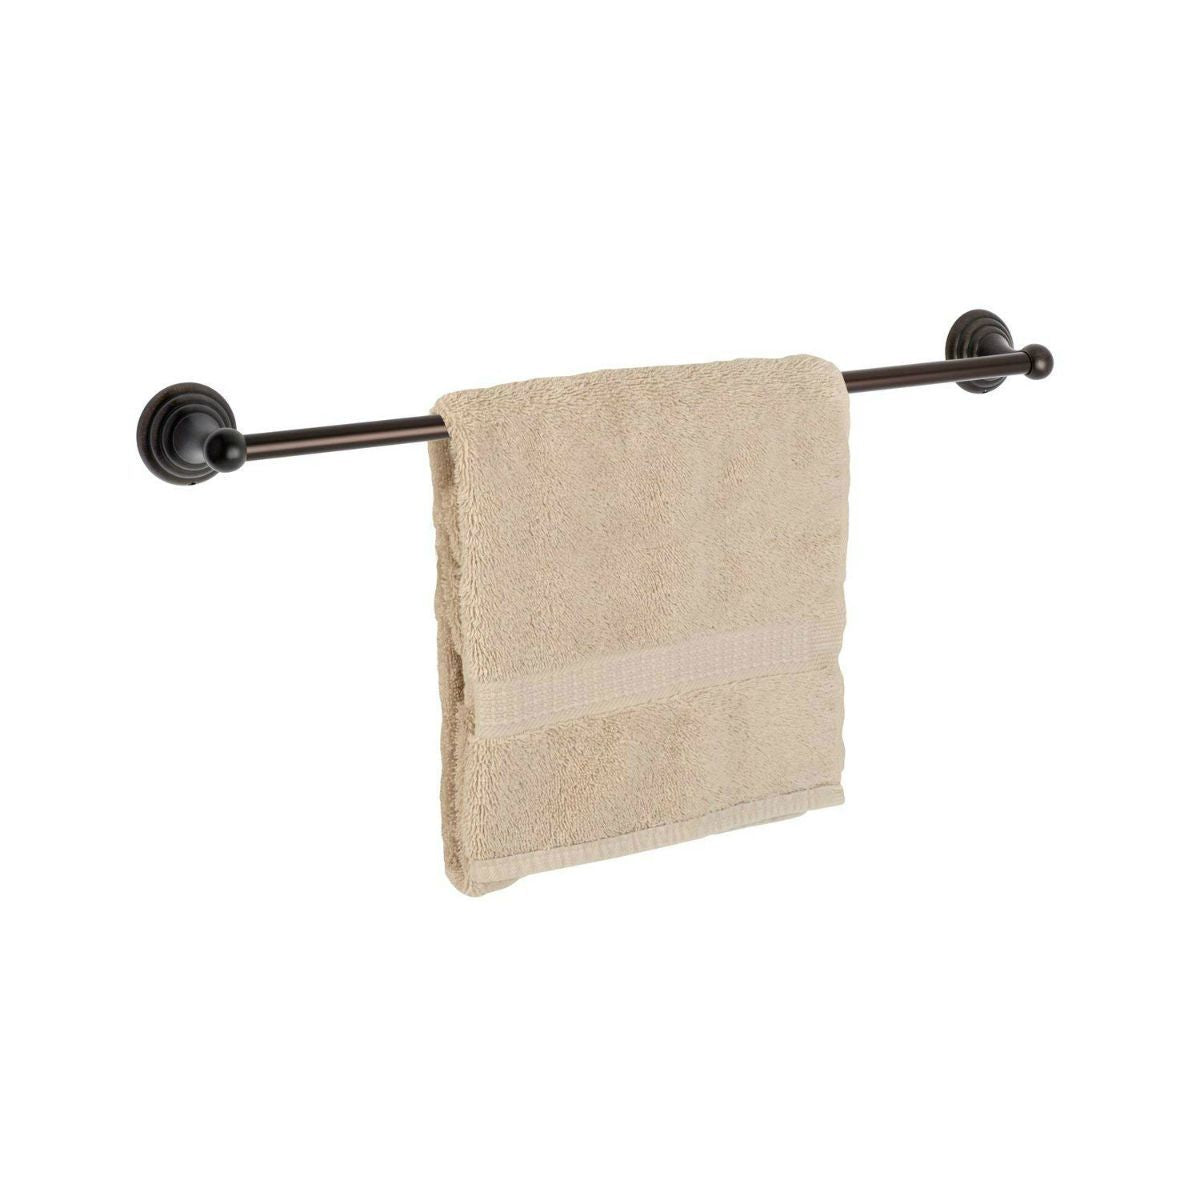 "Dynasty Hardware Bel Air 7518-ORB Oil Rubbed Bronze 18"" Single Towel Bar"